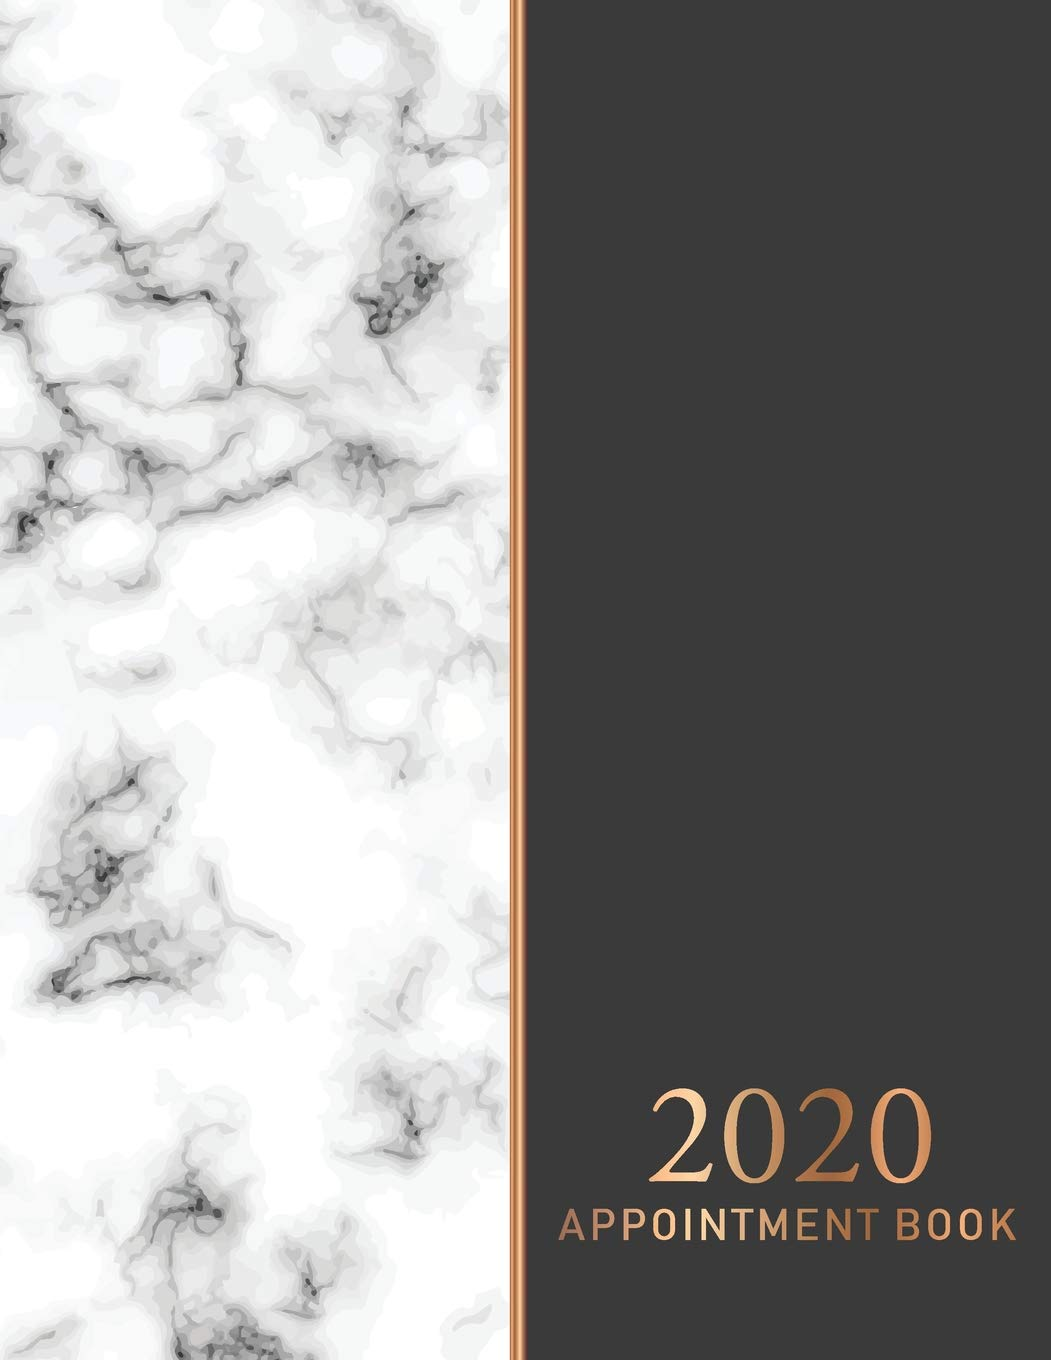 2020 Appointment Book: Elegant Marble Cover | 52 Weeks Daily ...